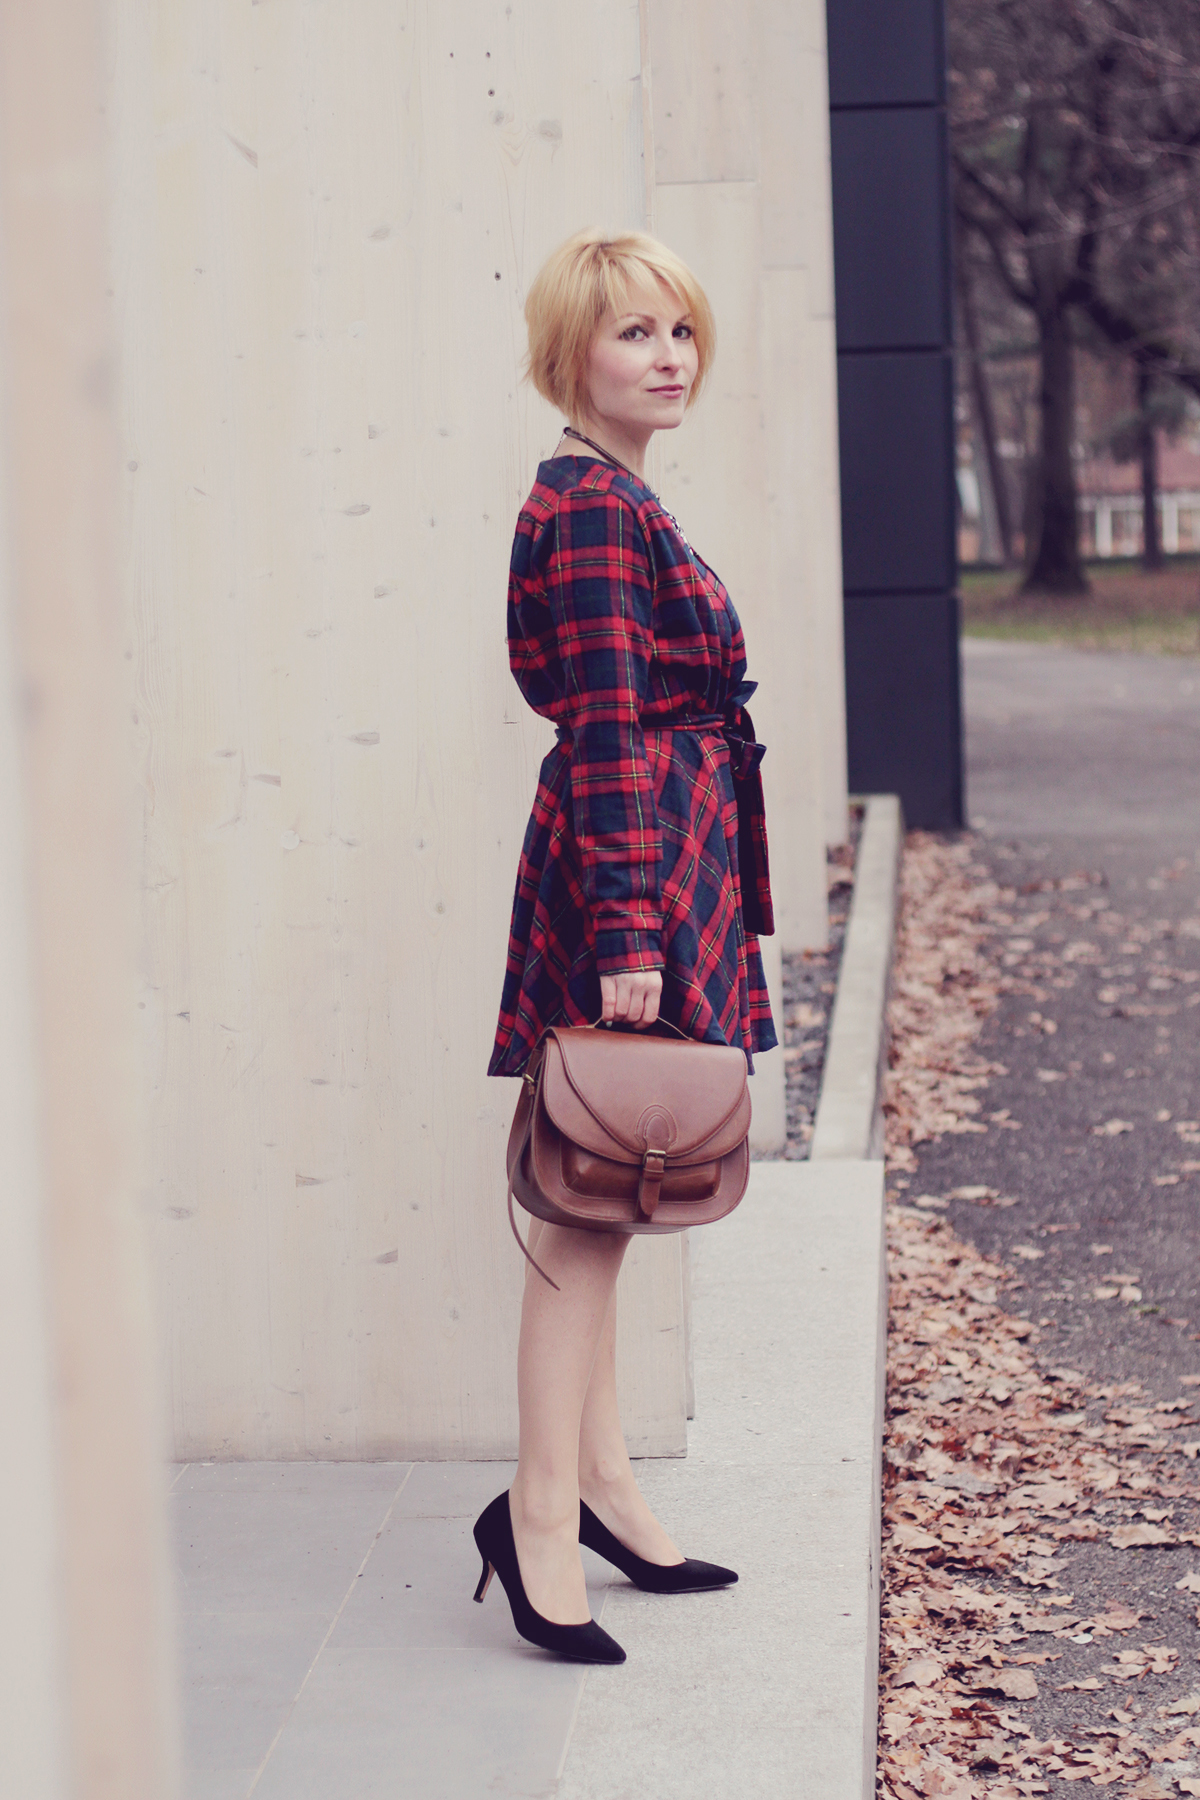 tartan dress and brown handbag